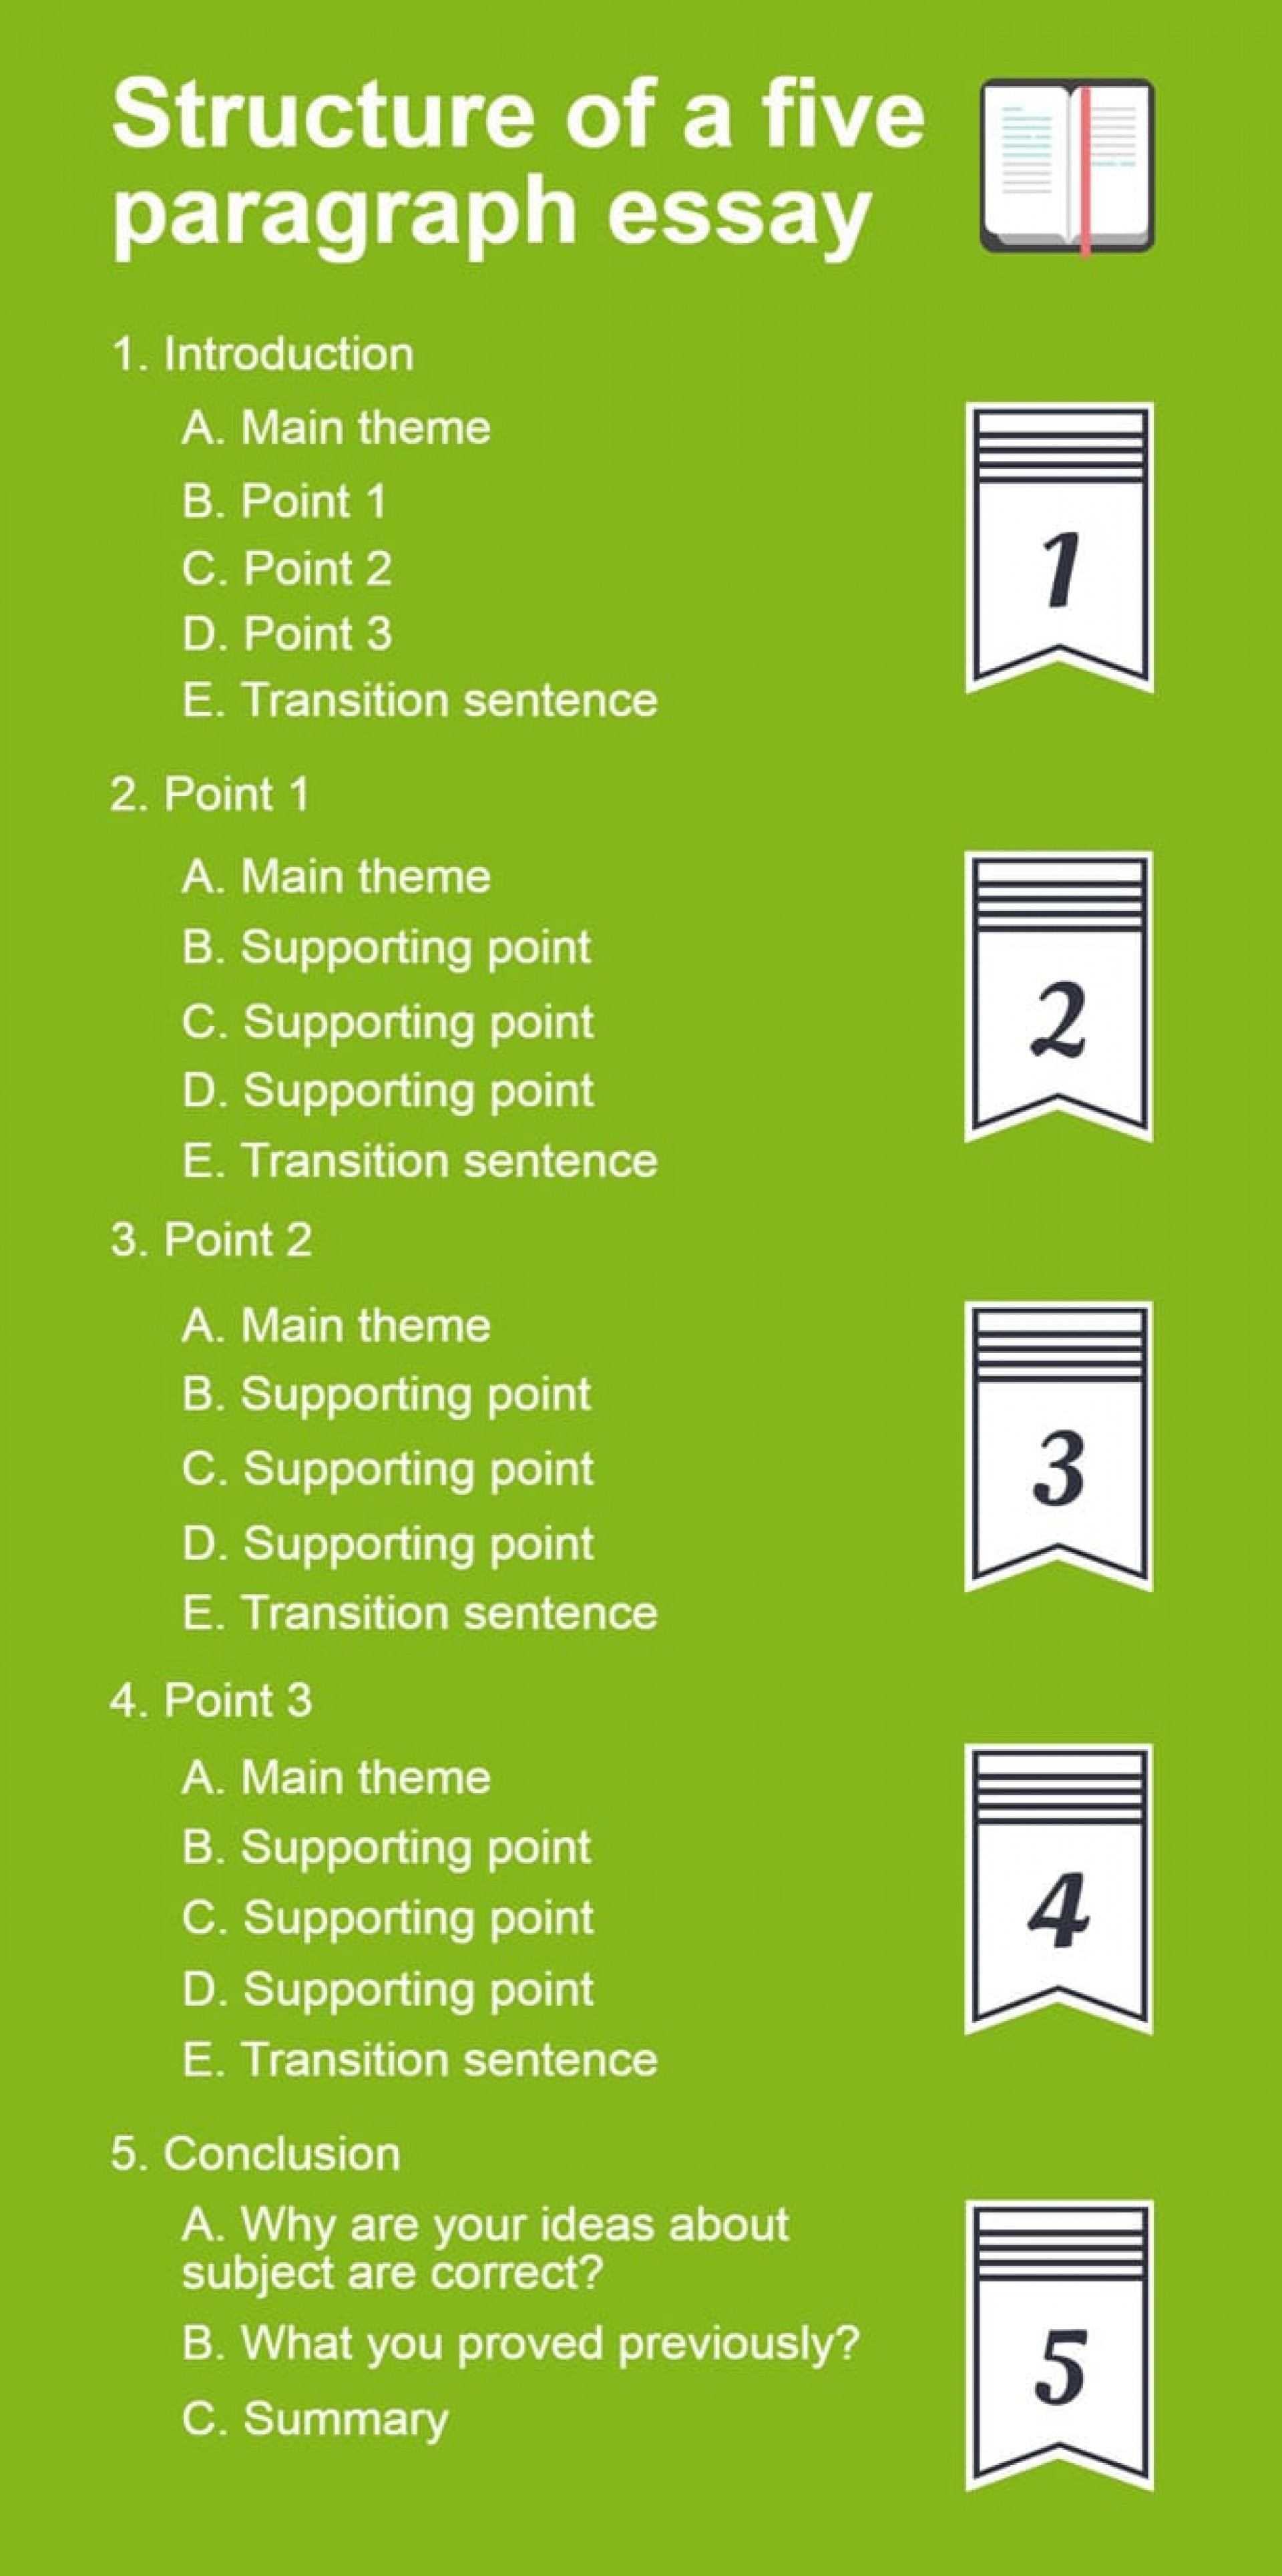 005 Essay Example Structure Of Perfect Paragraph Easy Way To Write Excellent An Argumentative How Analytical In Ielts Task 2 1920